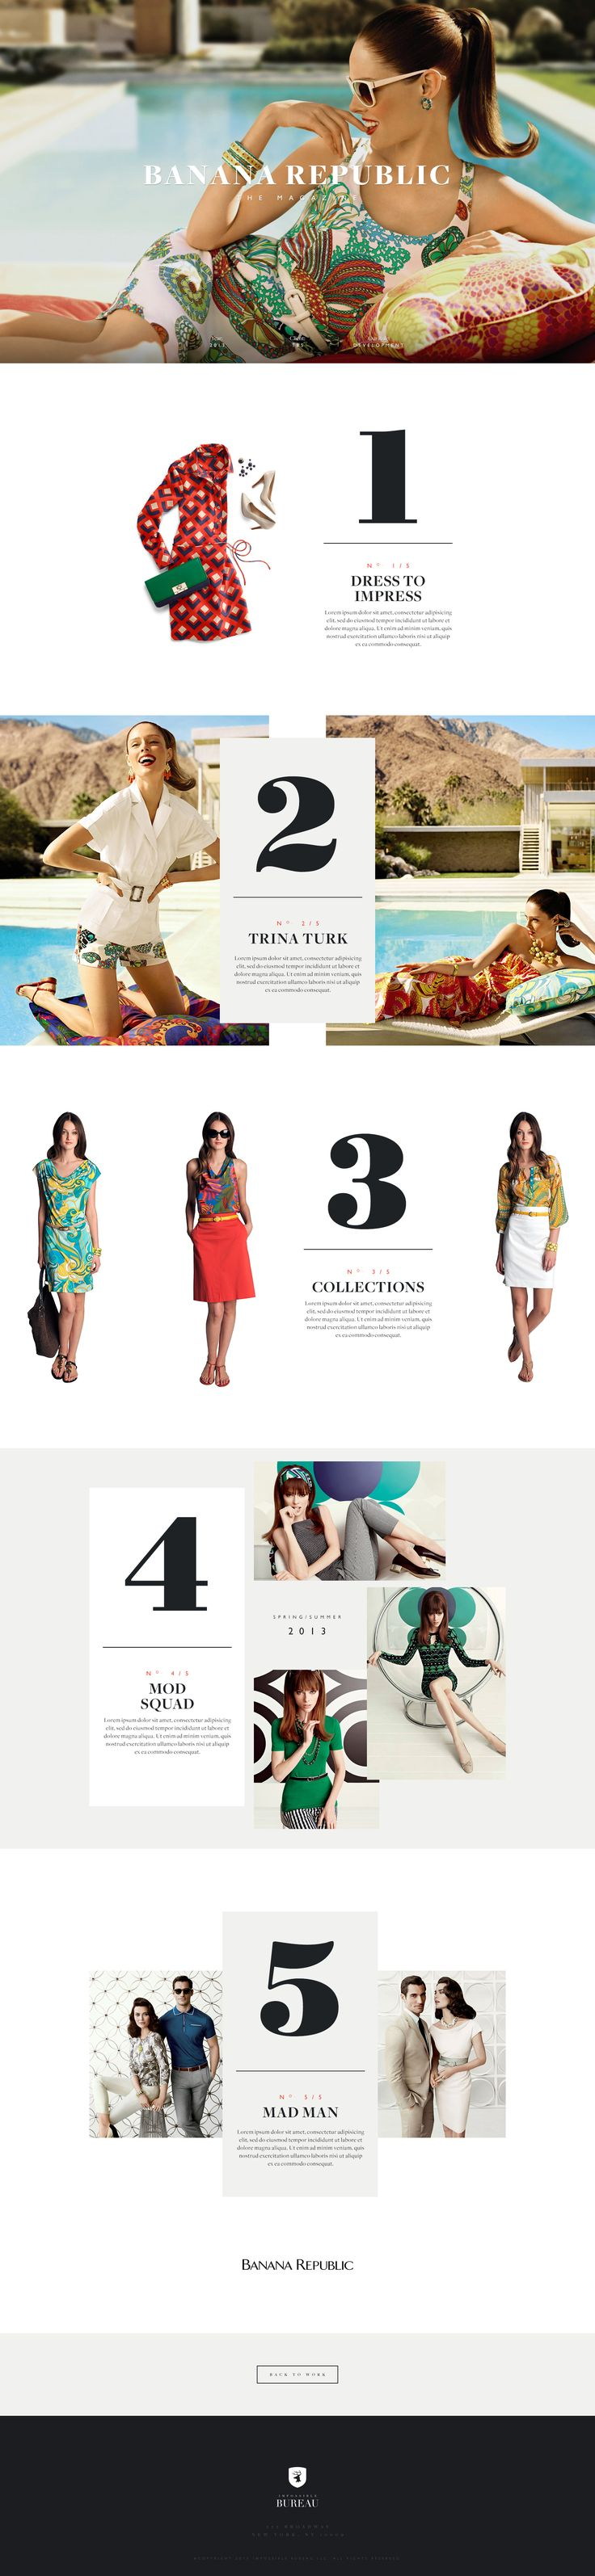 Banana Republic The Magazine Case Study Published by Maan Ali